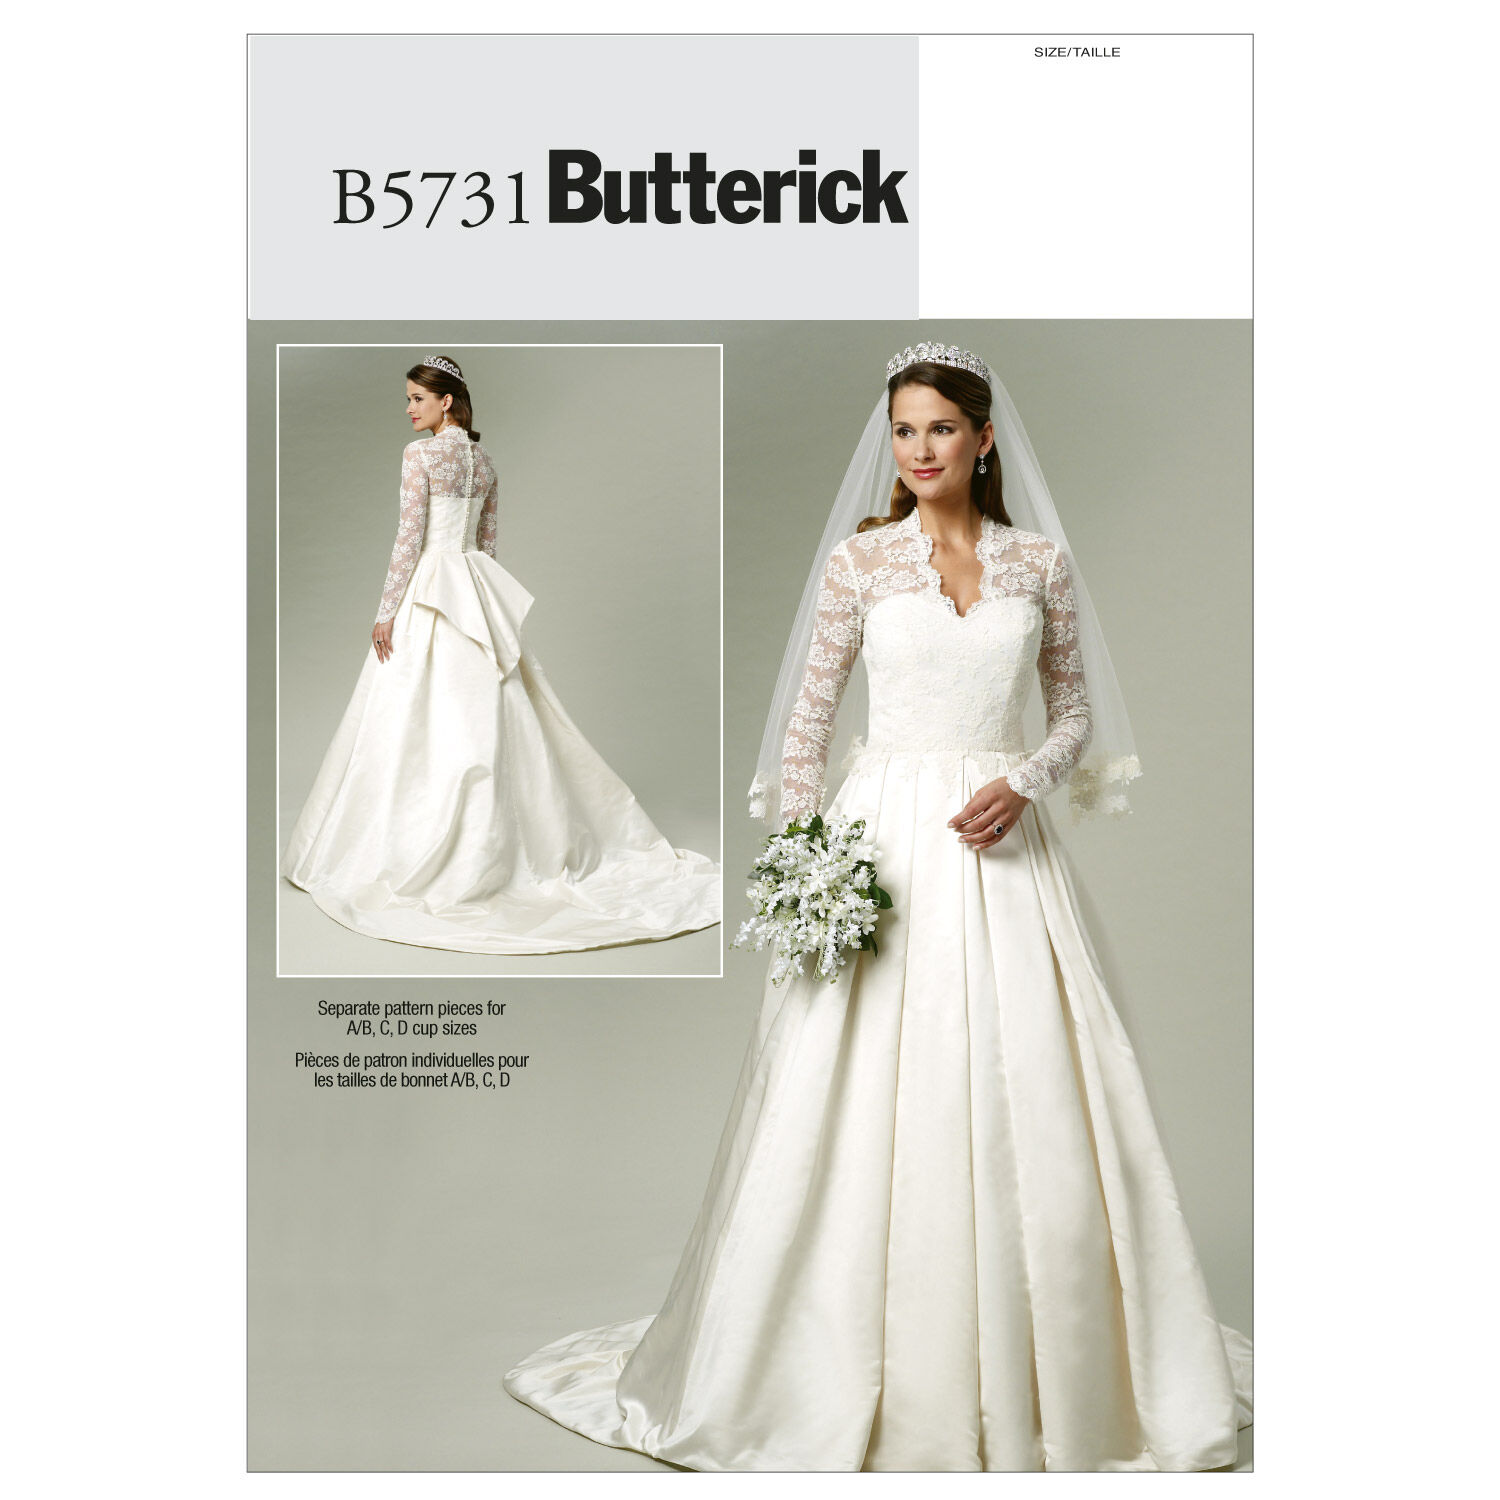 1940s Clothing Butterick Misses Bridal - B5731 $19.95 AT vintagedancer.com